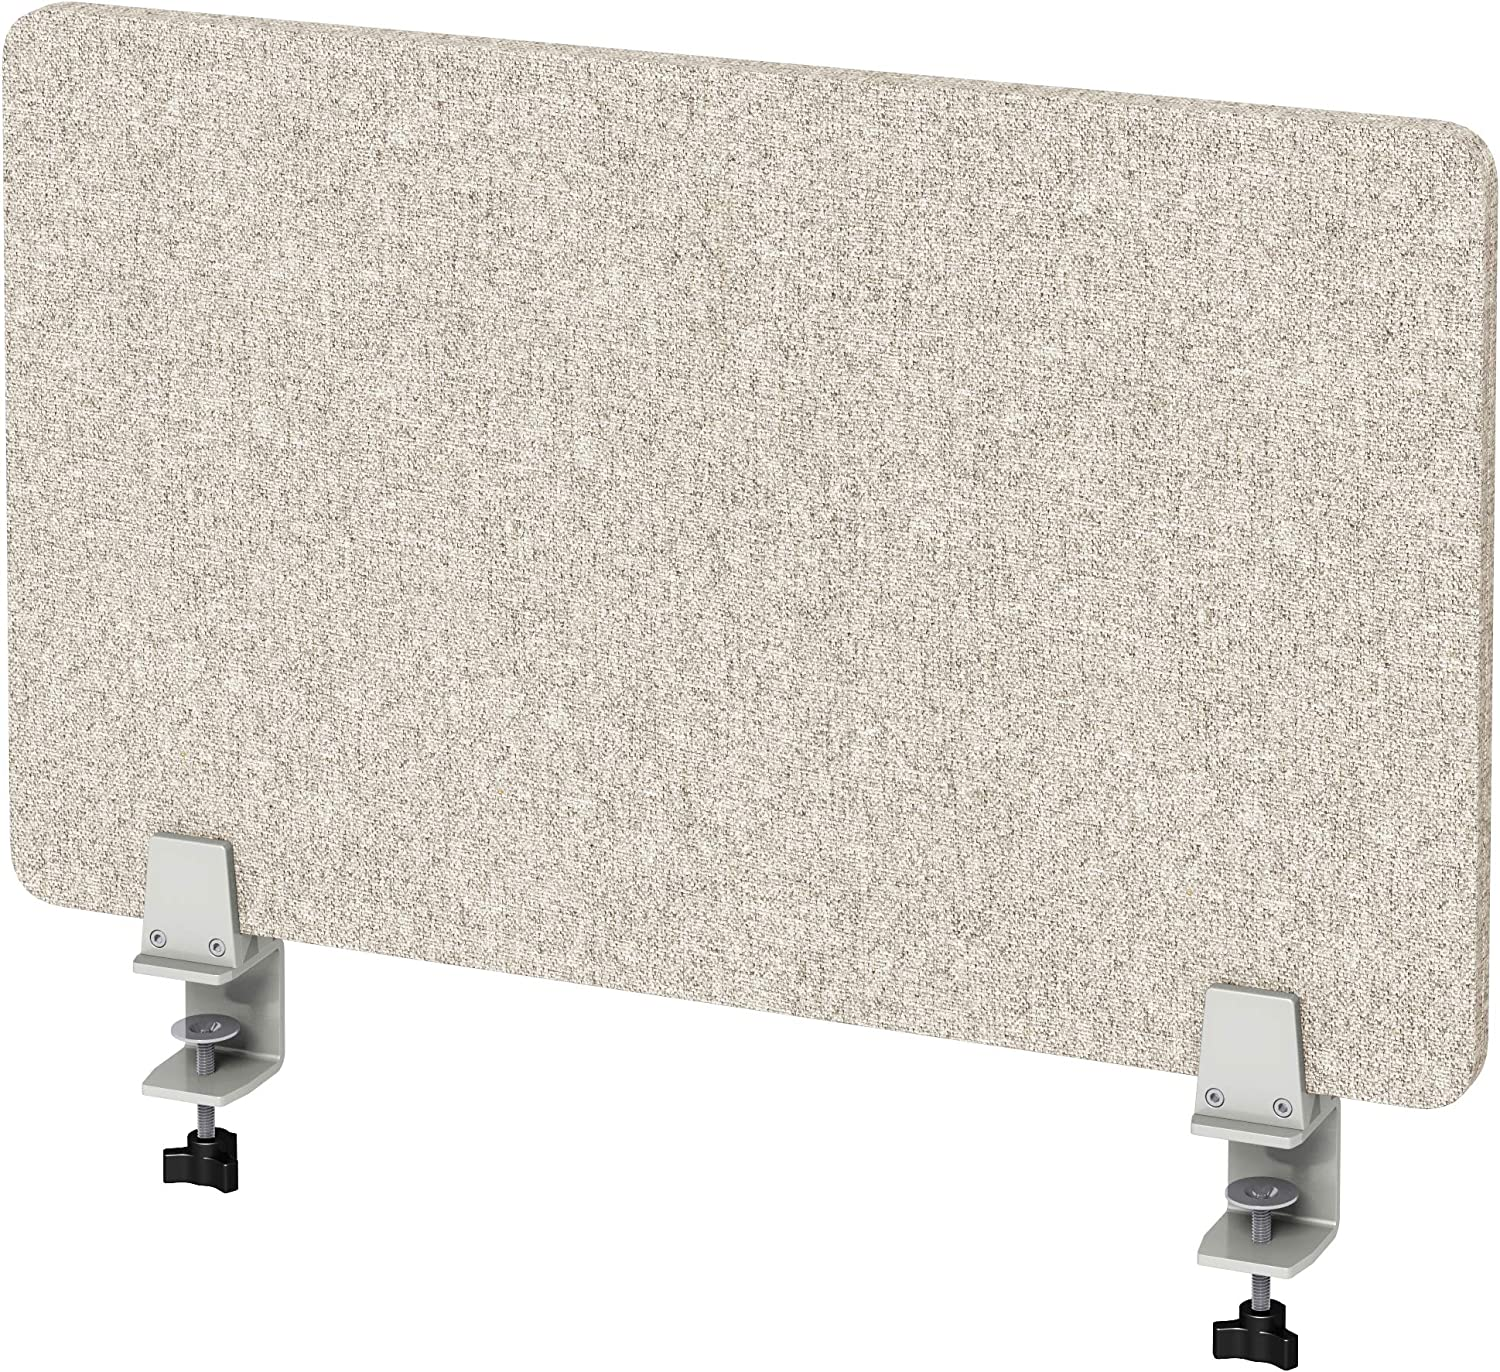 """VaRoom Acoustic Desktop Privacy Divider, 29""""W x 18""""H Sound Absorbing Clamp-on Cubicle Desk Divider Partition Panel in Tan Tackable Fabric"""